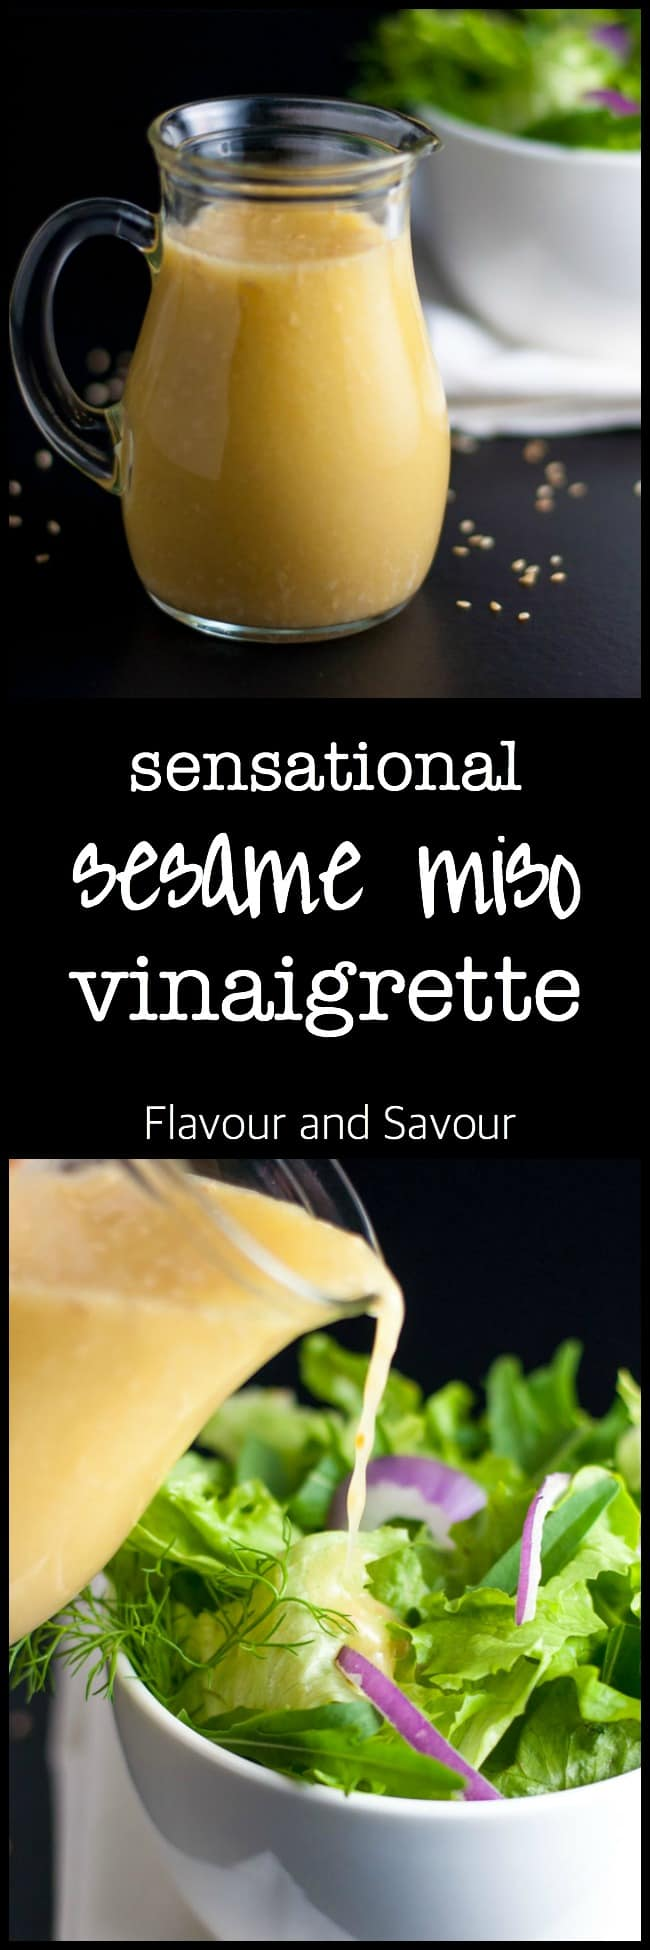 Sesame Miso Vinaigrette and Marinade. This is a sensational dressing and marinade that makes an every day salad something special. Great on grilled vegetables and meats too! |www.flavourandsavour.com